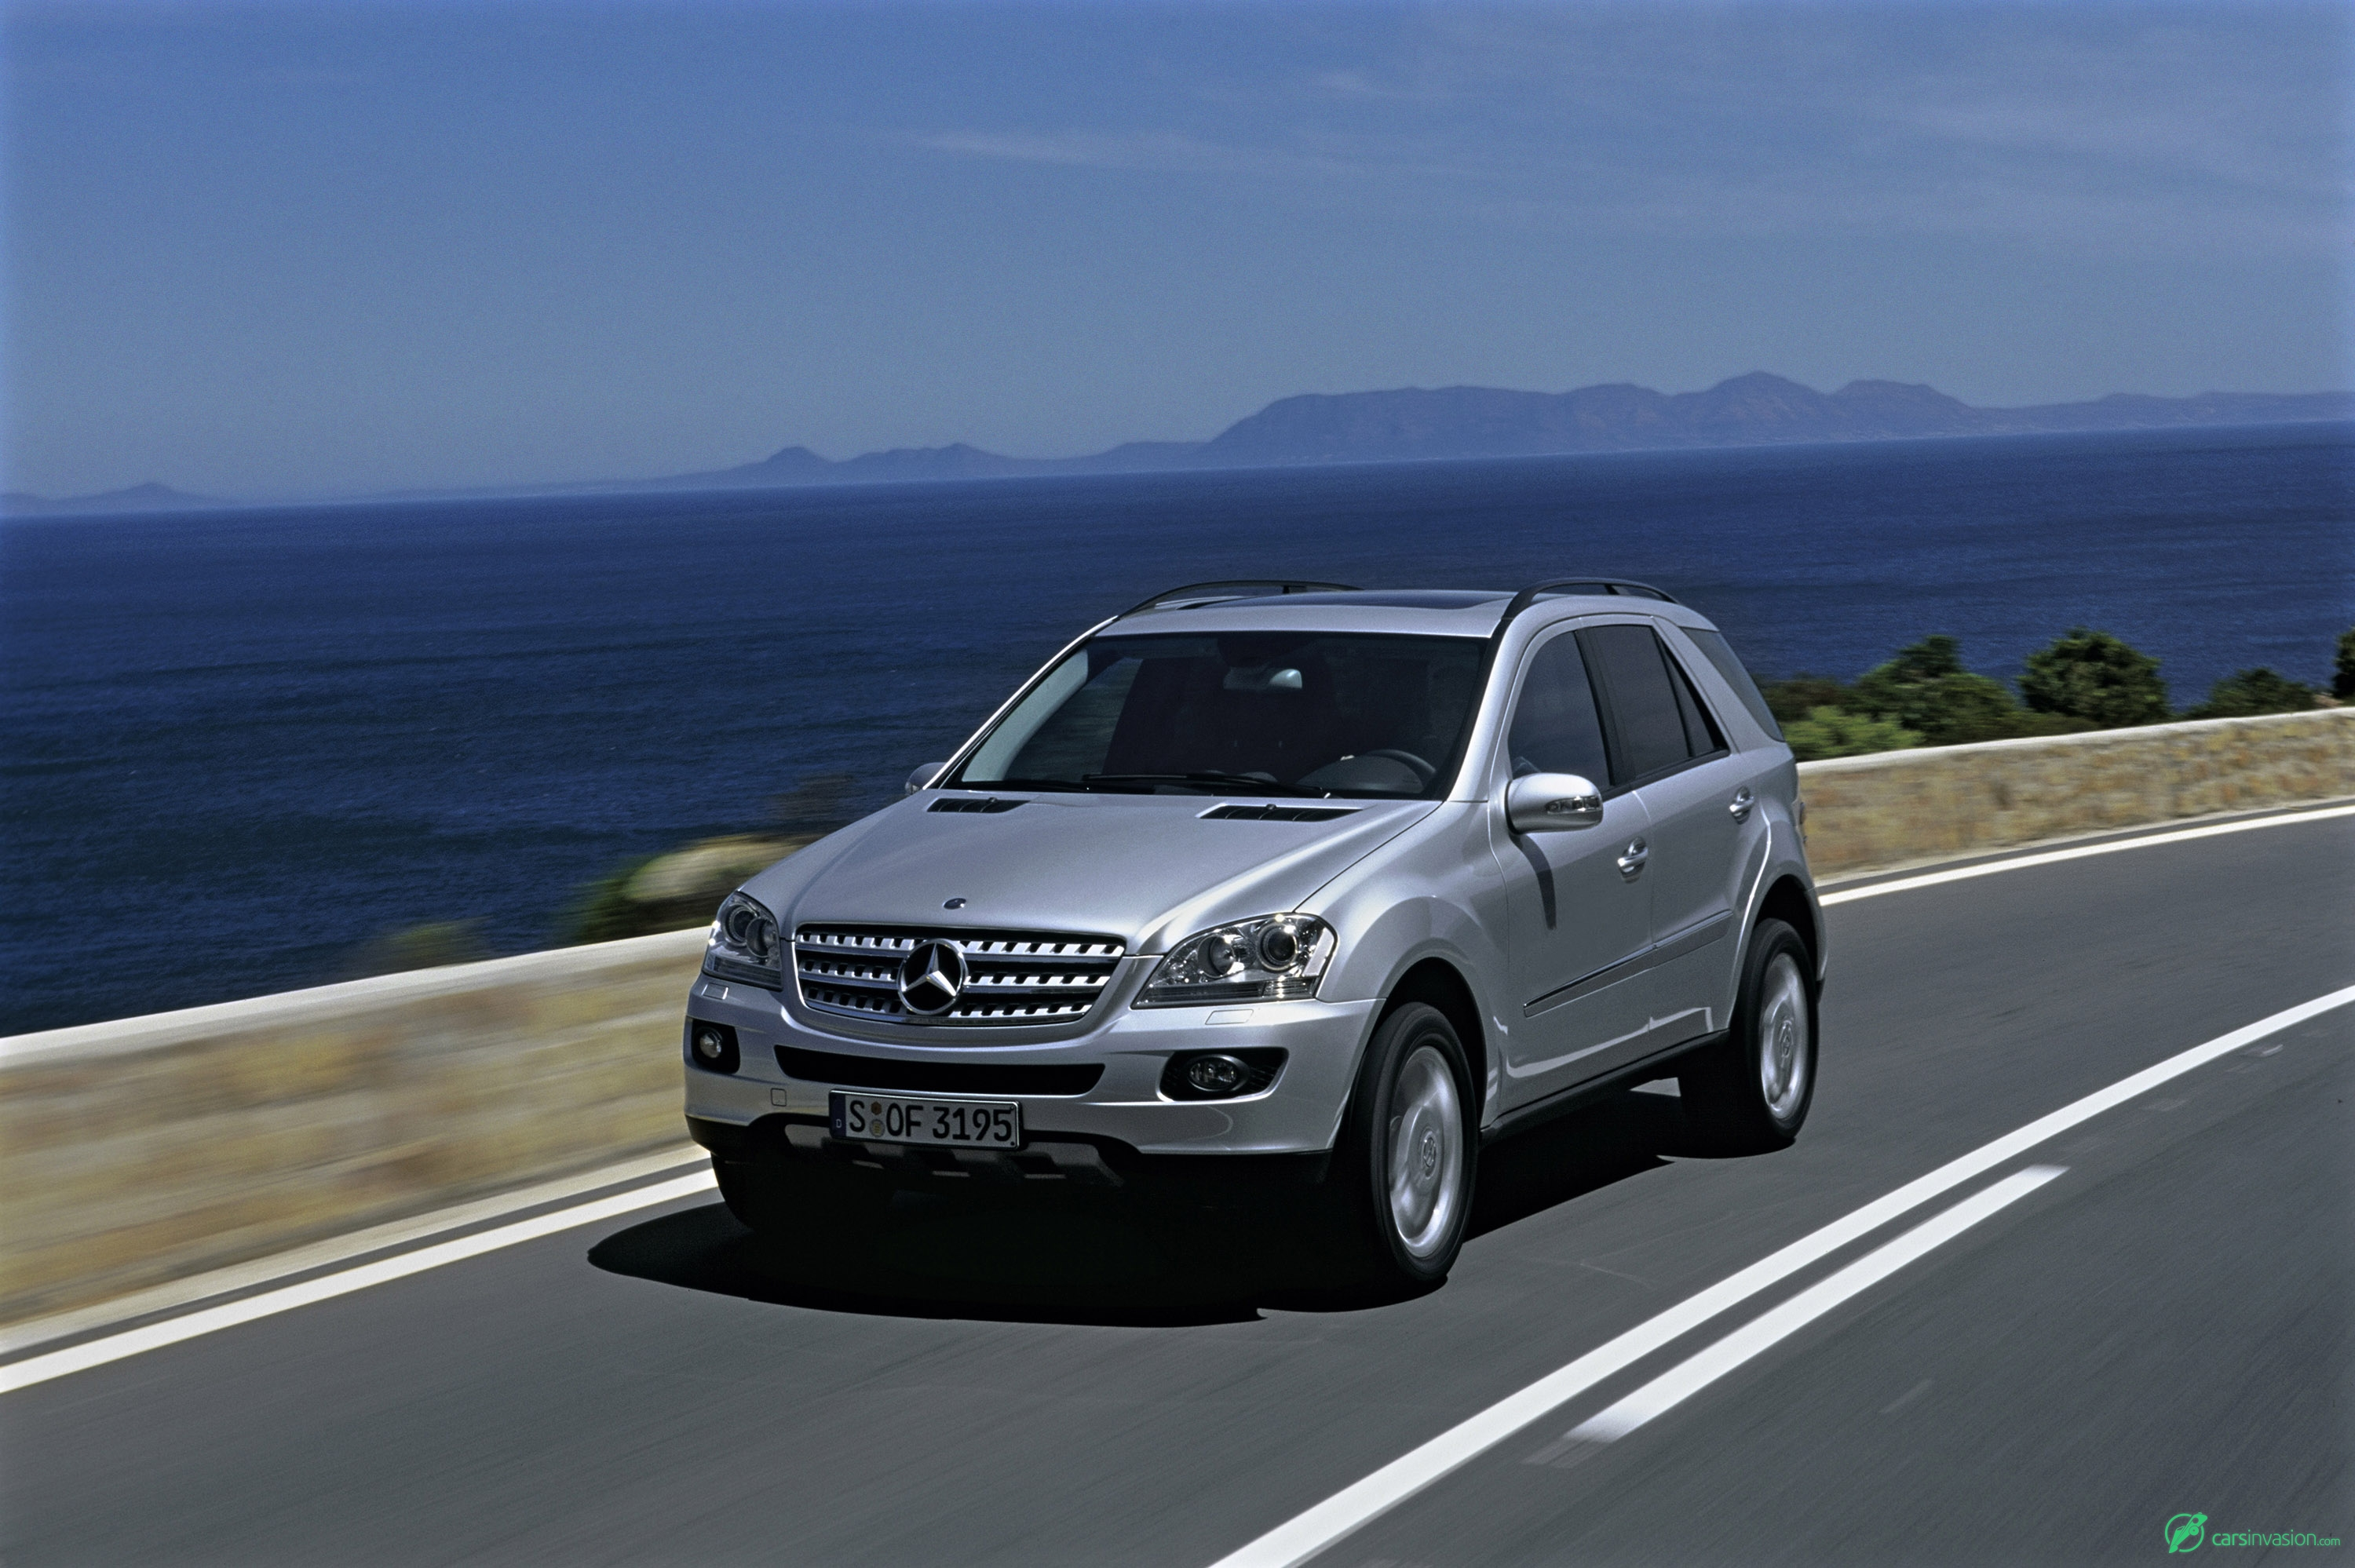 2006 mercedes benz ml420 cdi 4matic hd pictures. Black Bedroom Furniture Sets. Home Design Ideas